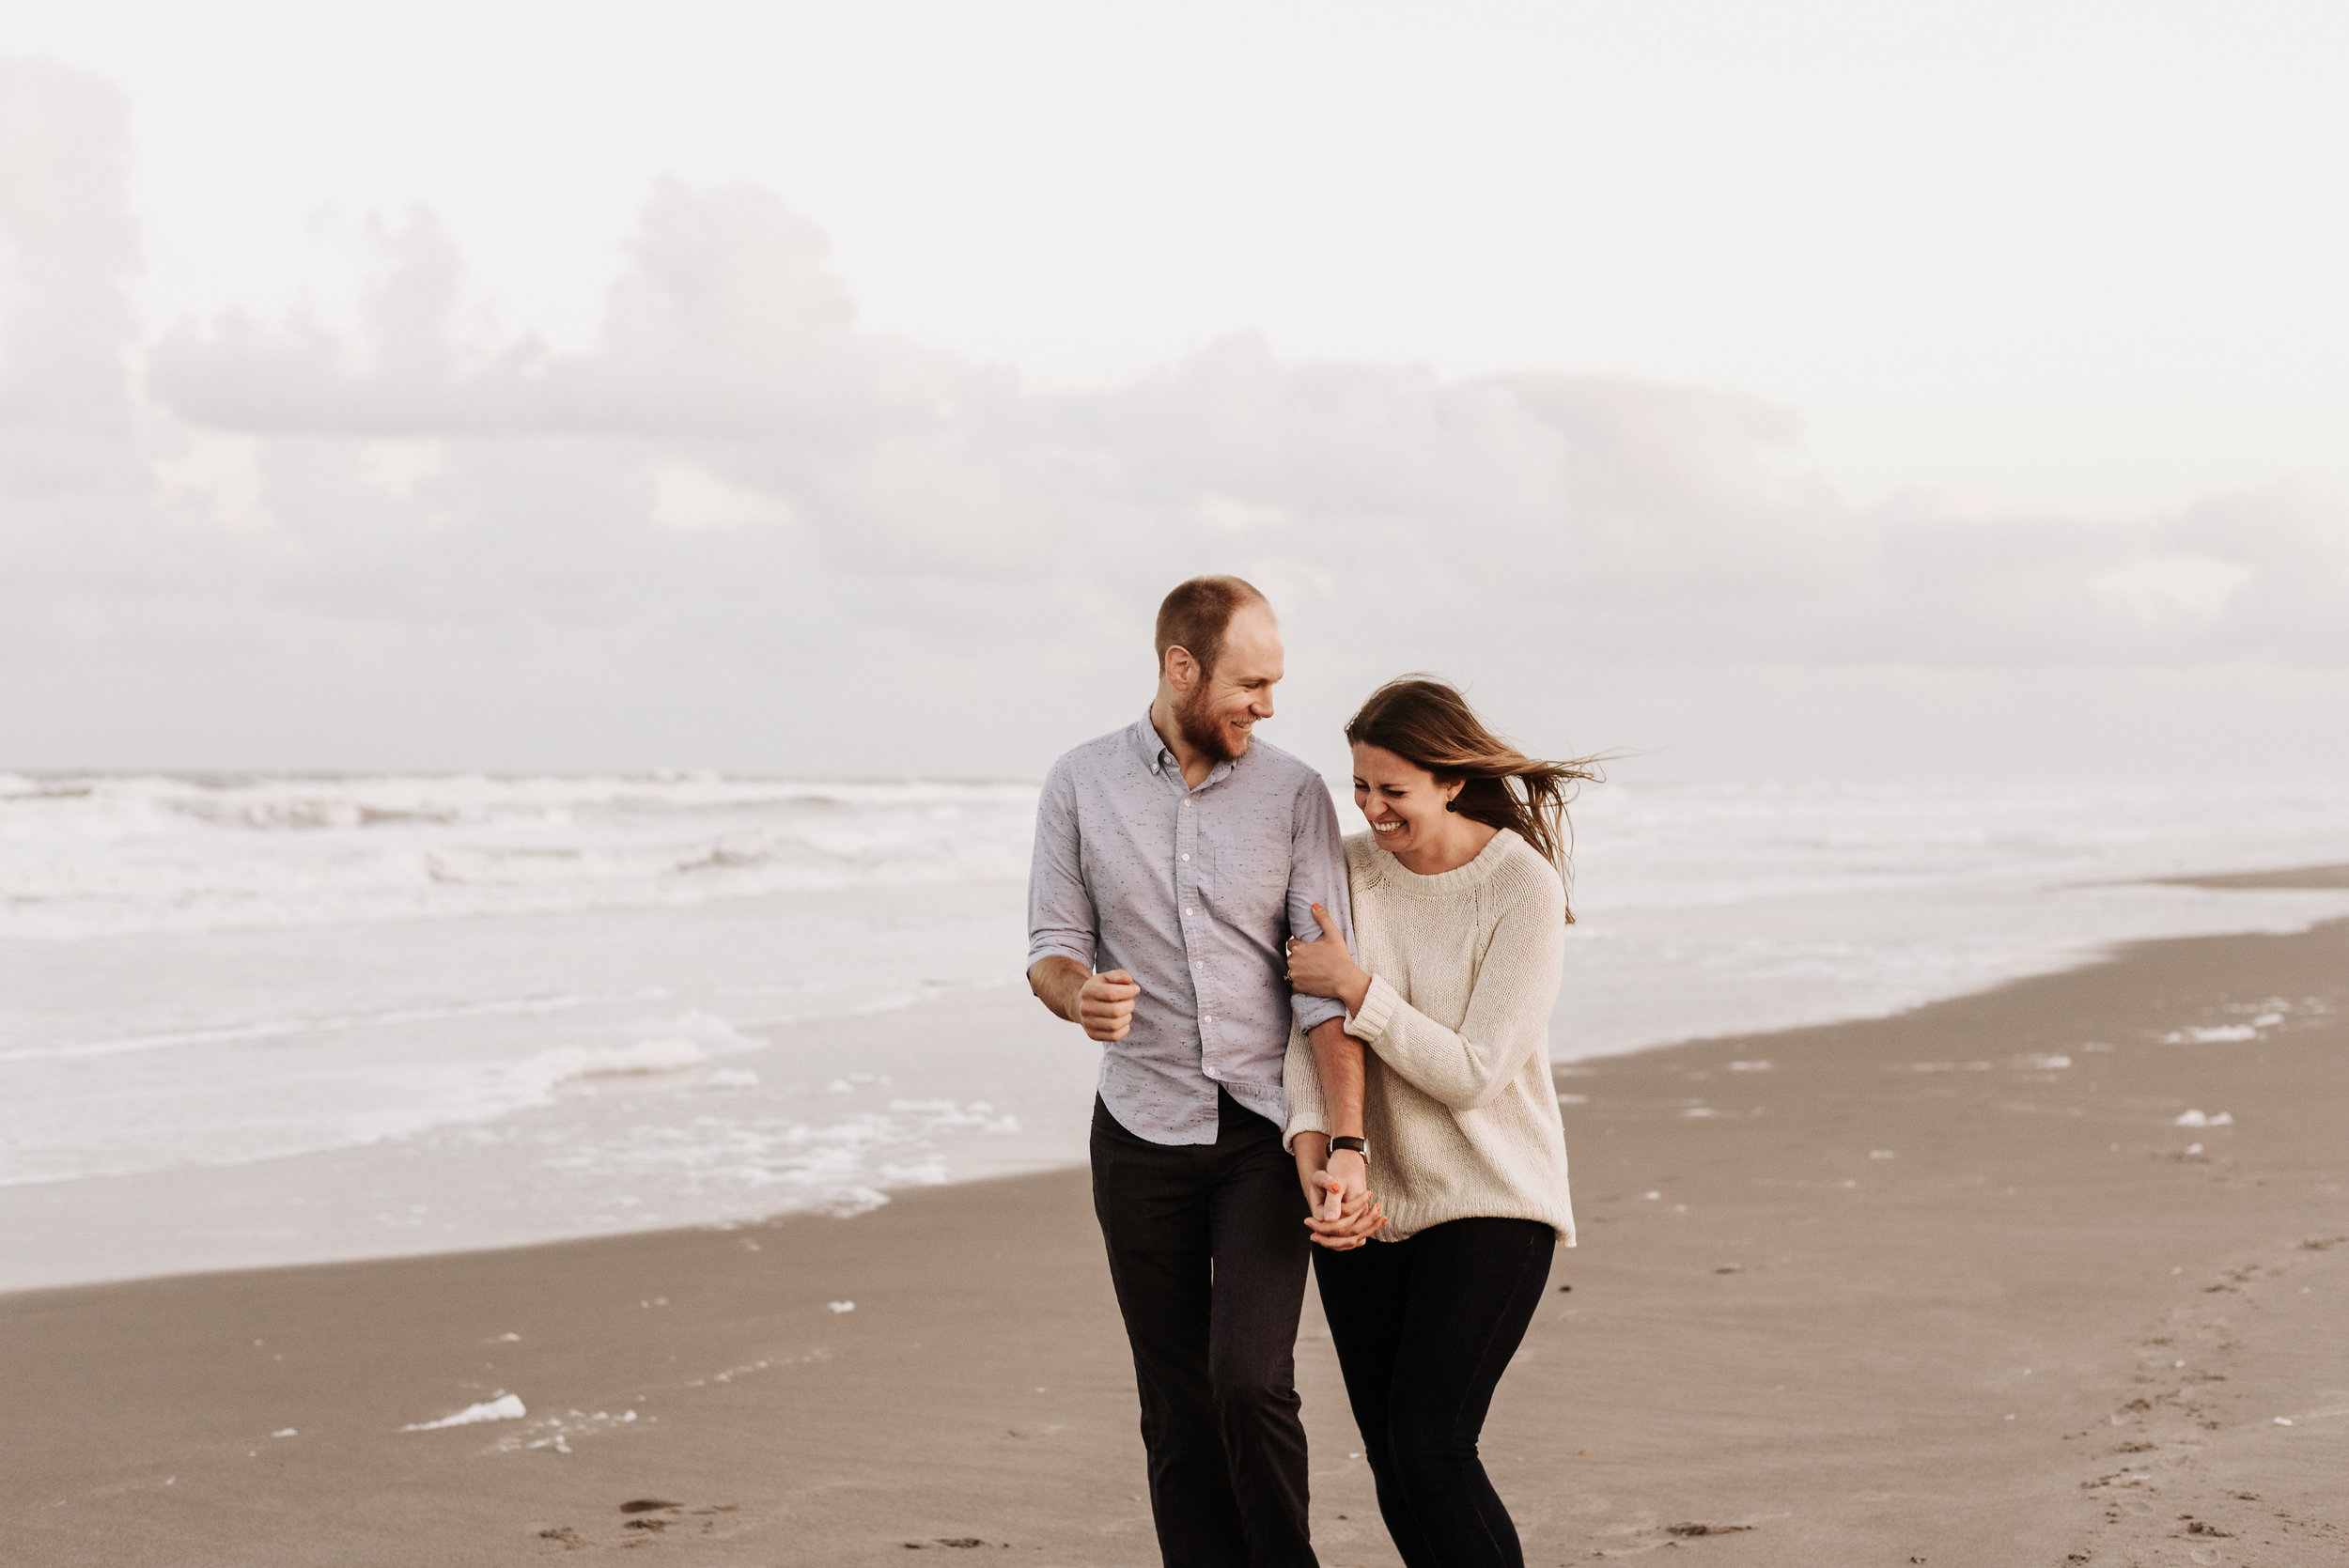 Courtney_Luke_Wedding_Engagement_Session_Cocoa_Beach_Florida_Photography_by_V_4947.jpg